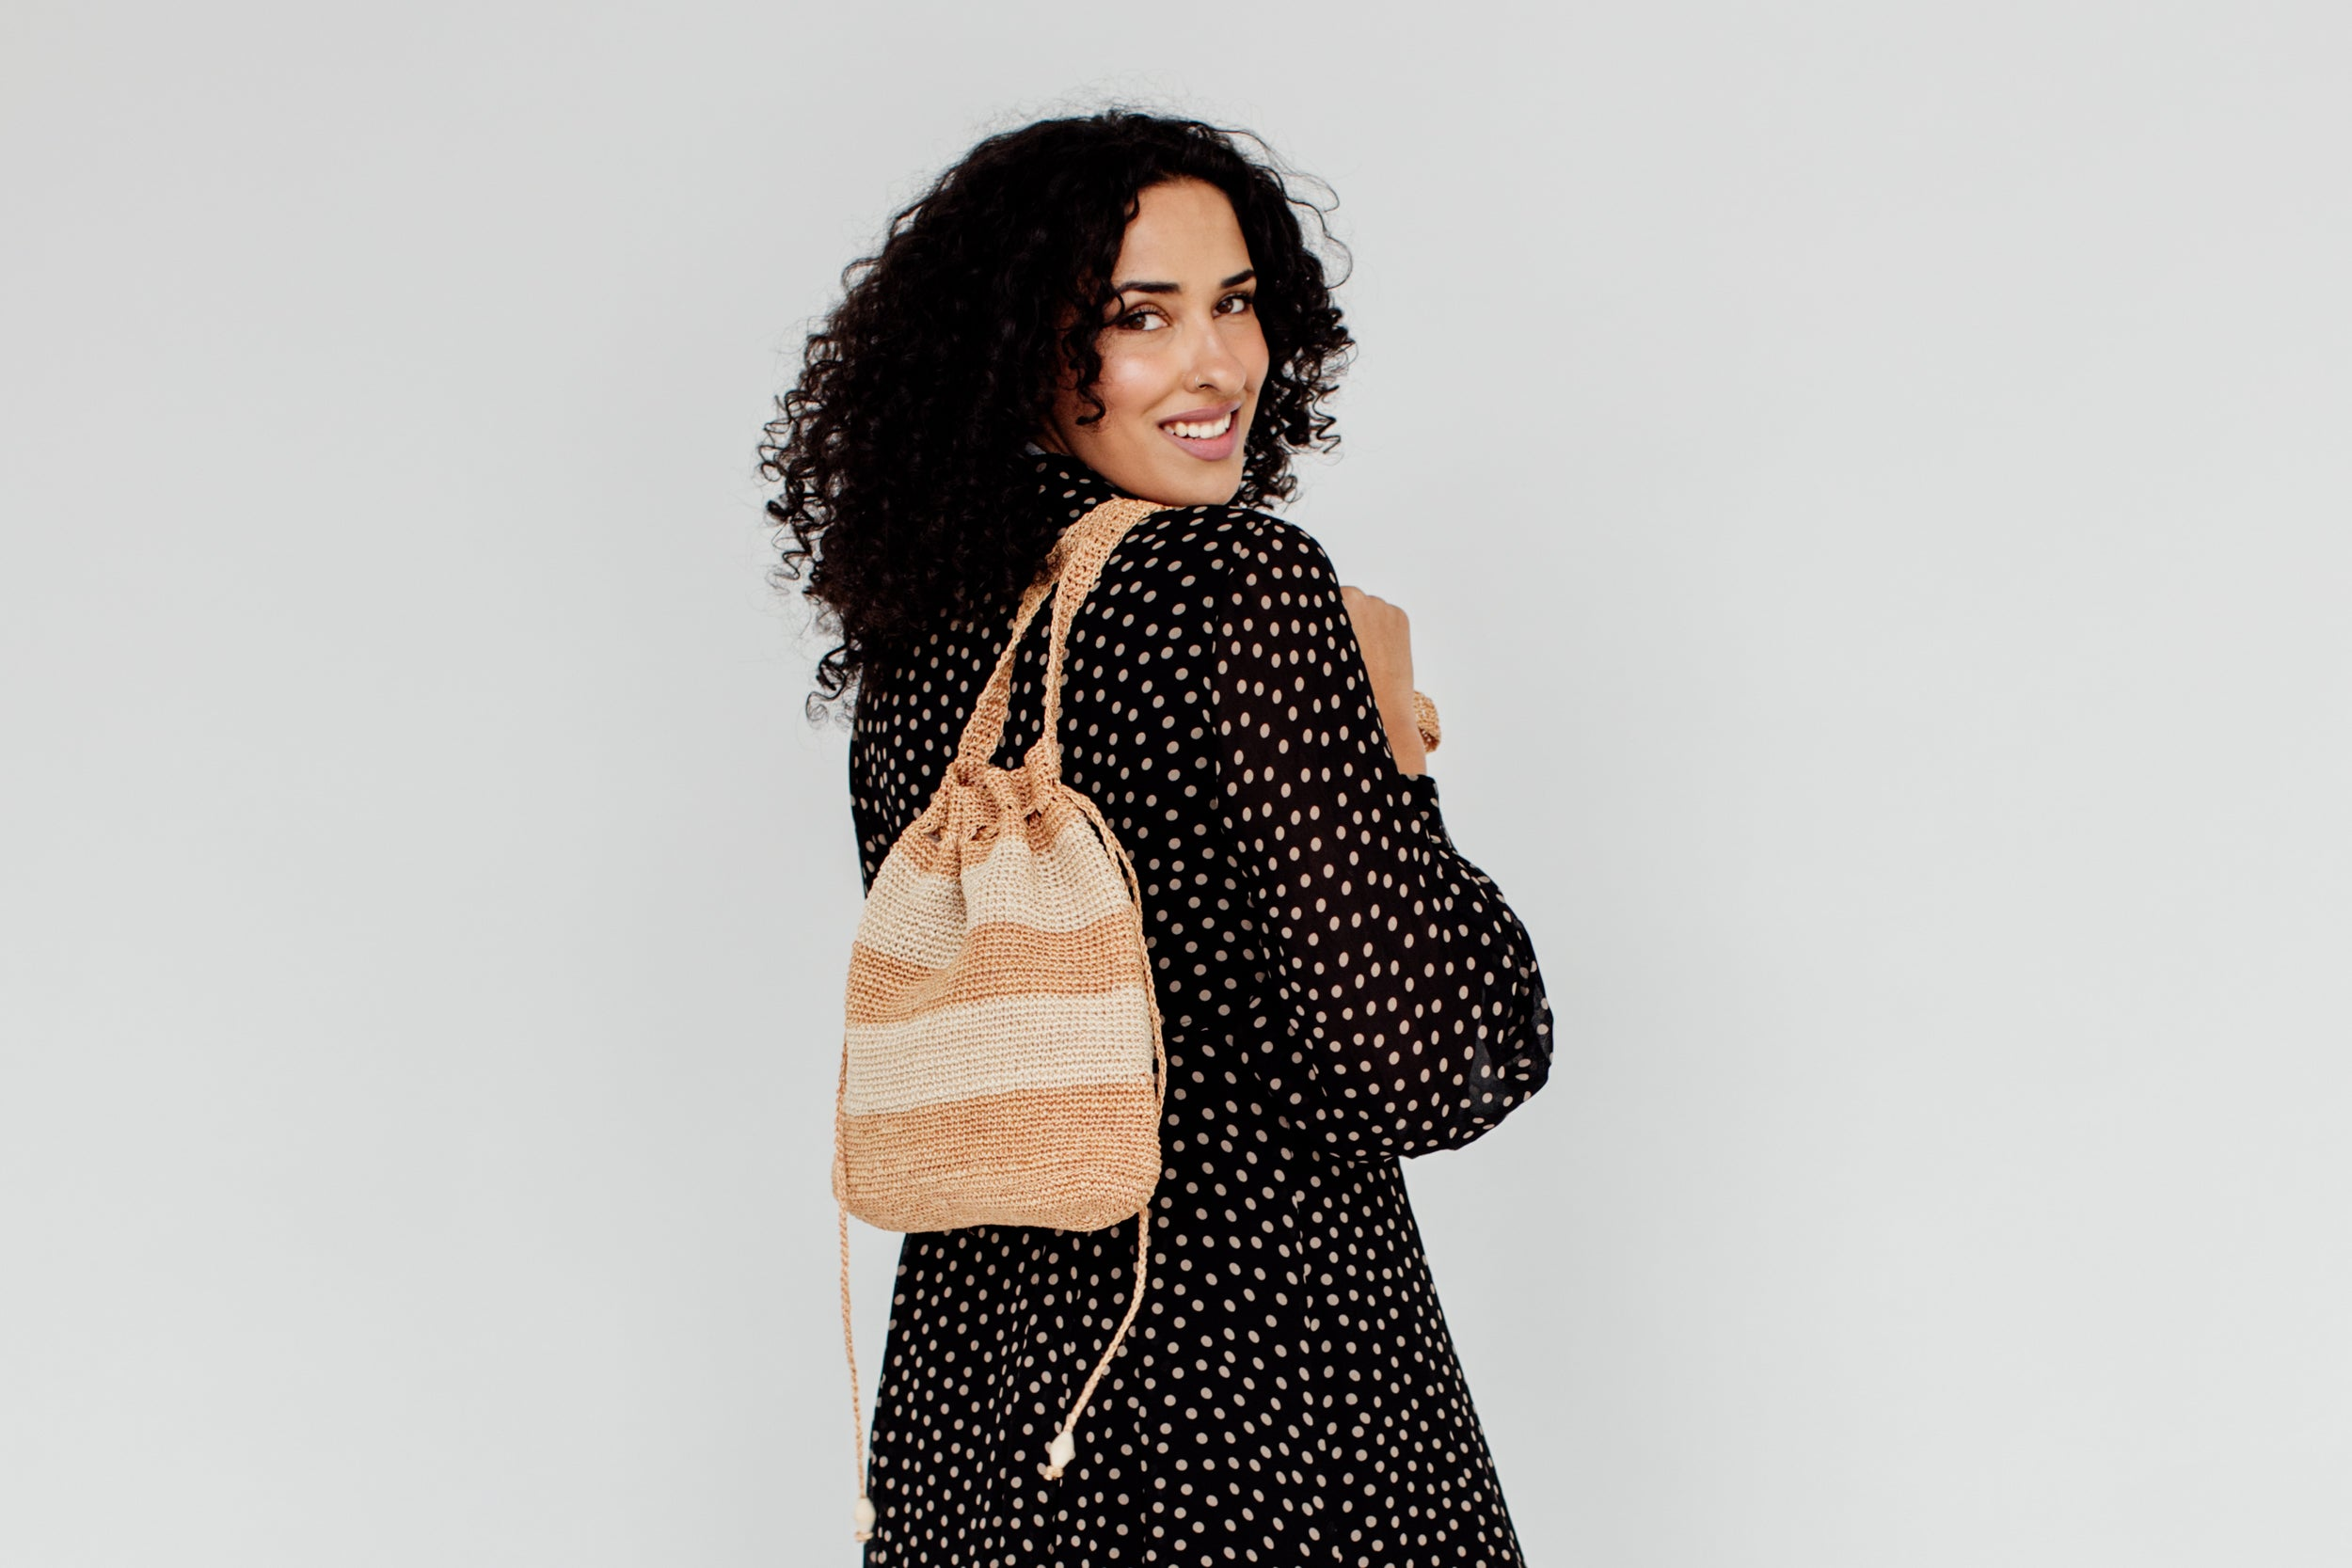 A woman holds a bag over her shoulder and smiles.